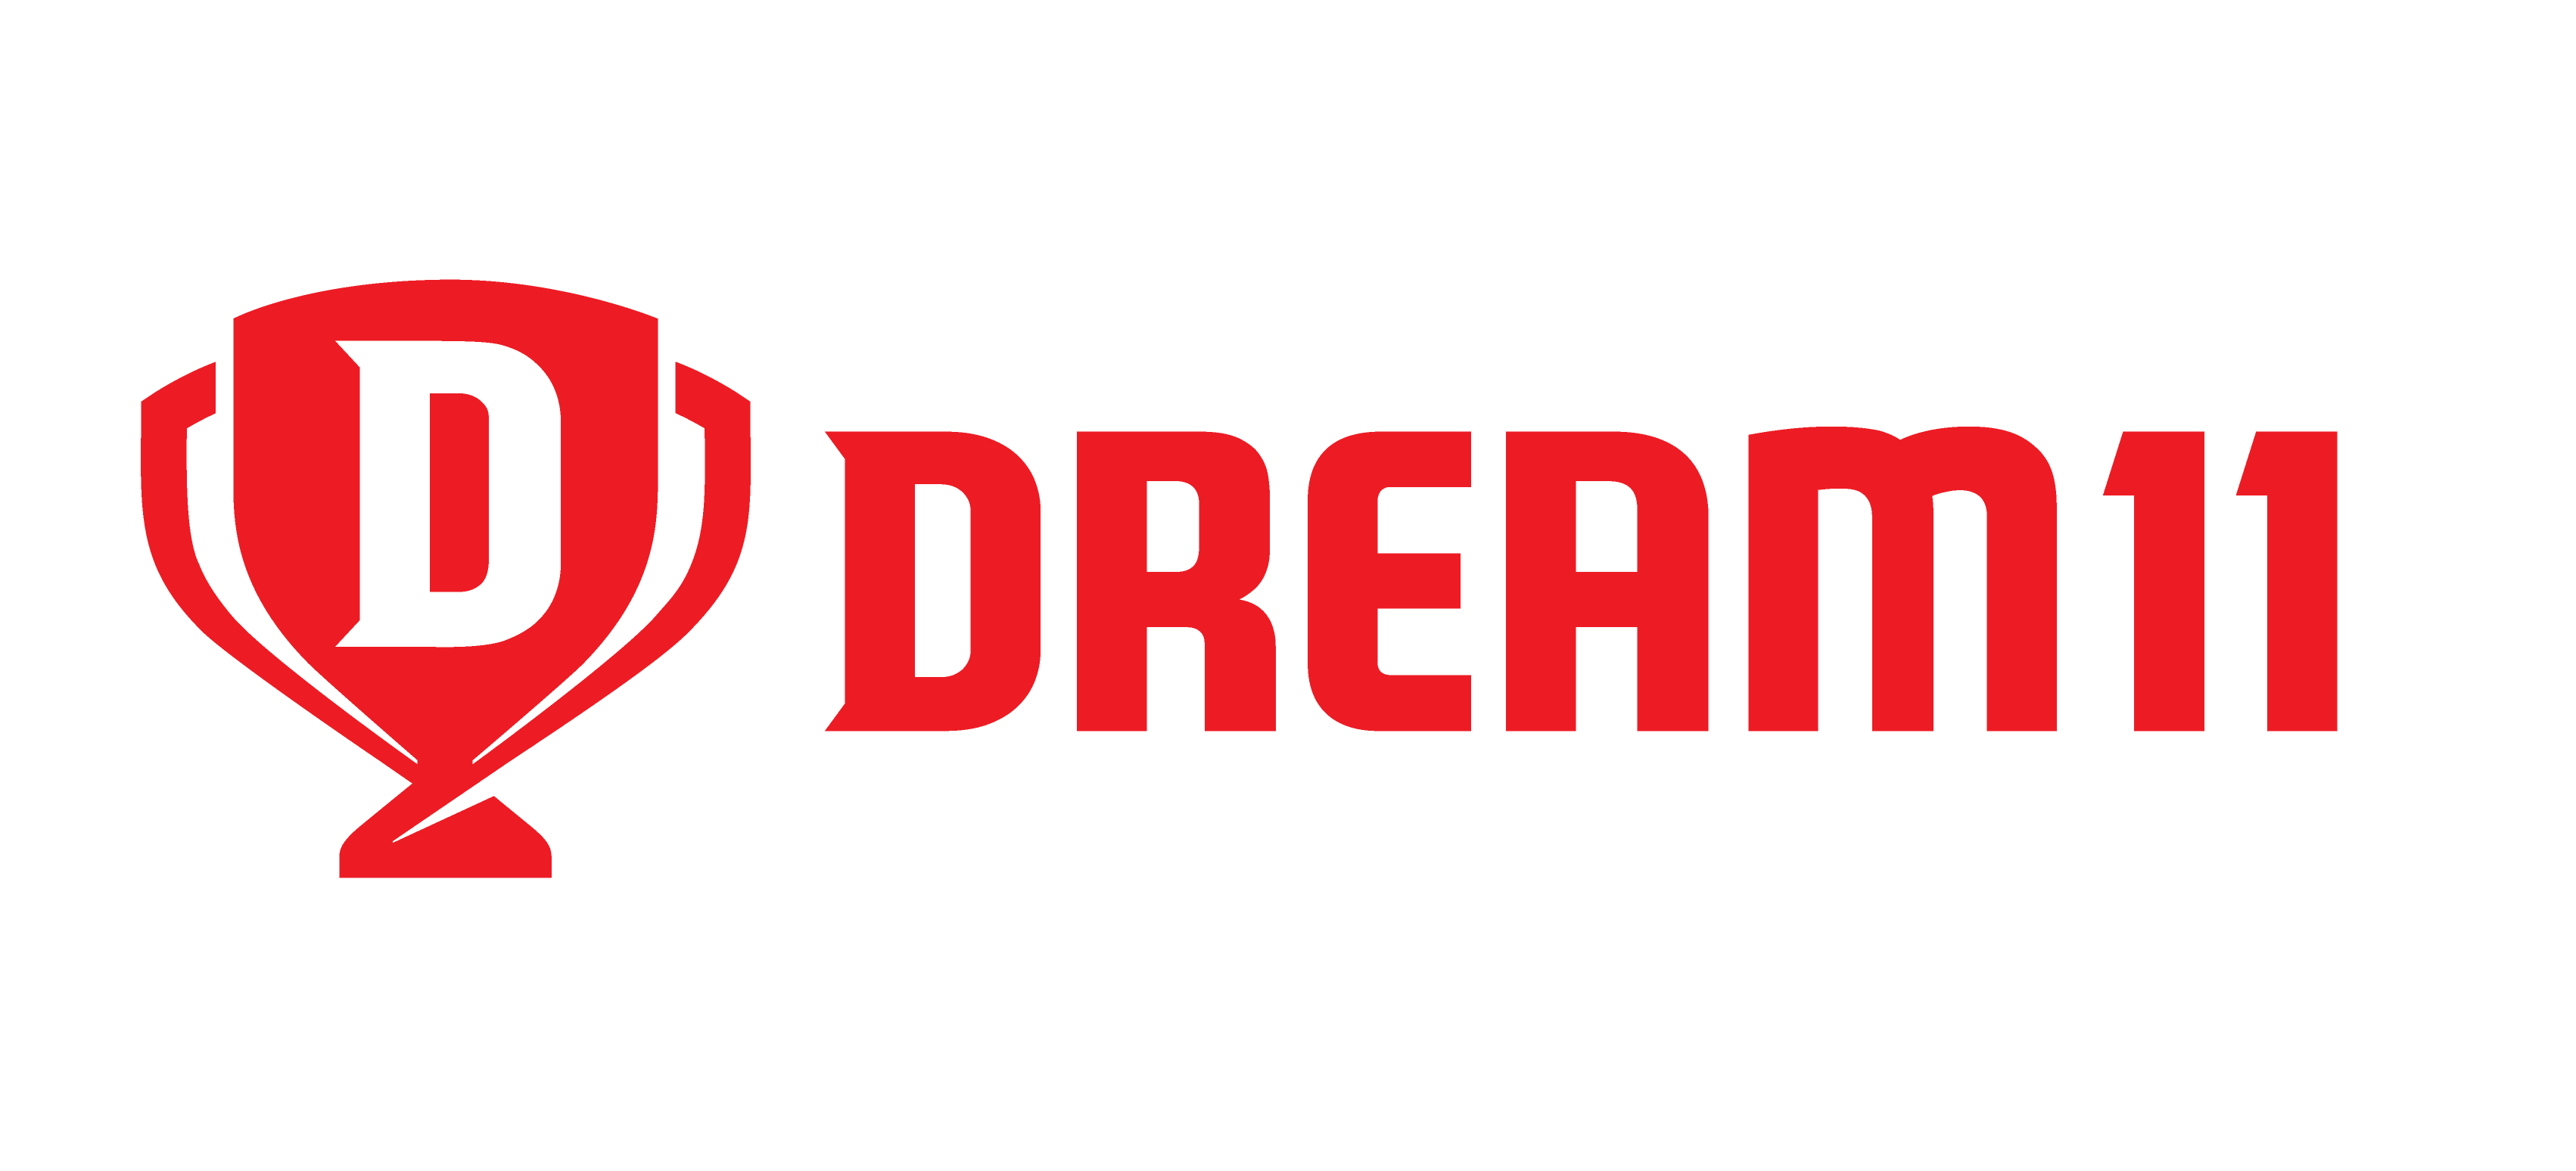 Dream11 logo